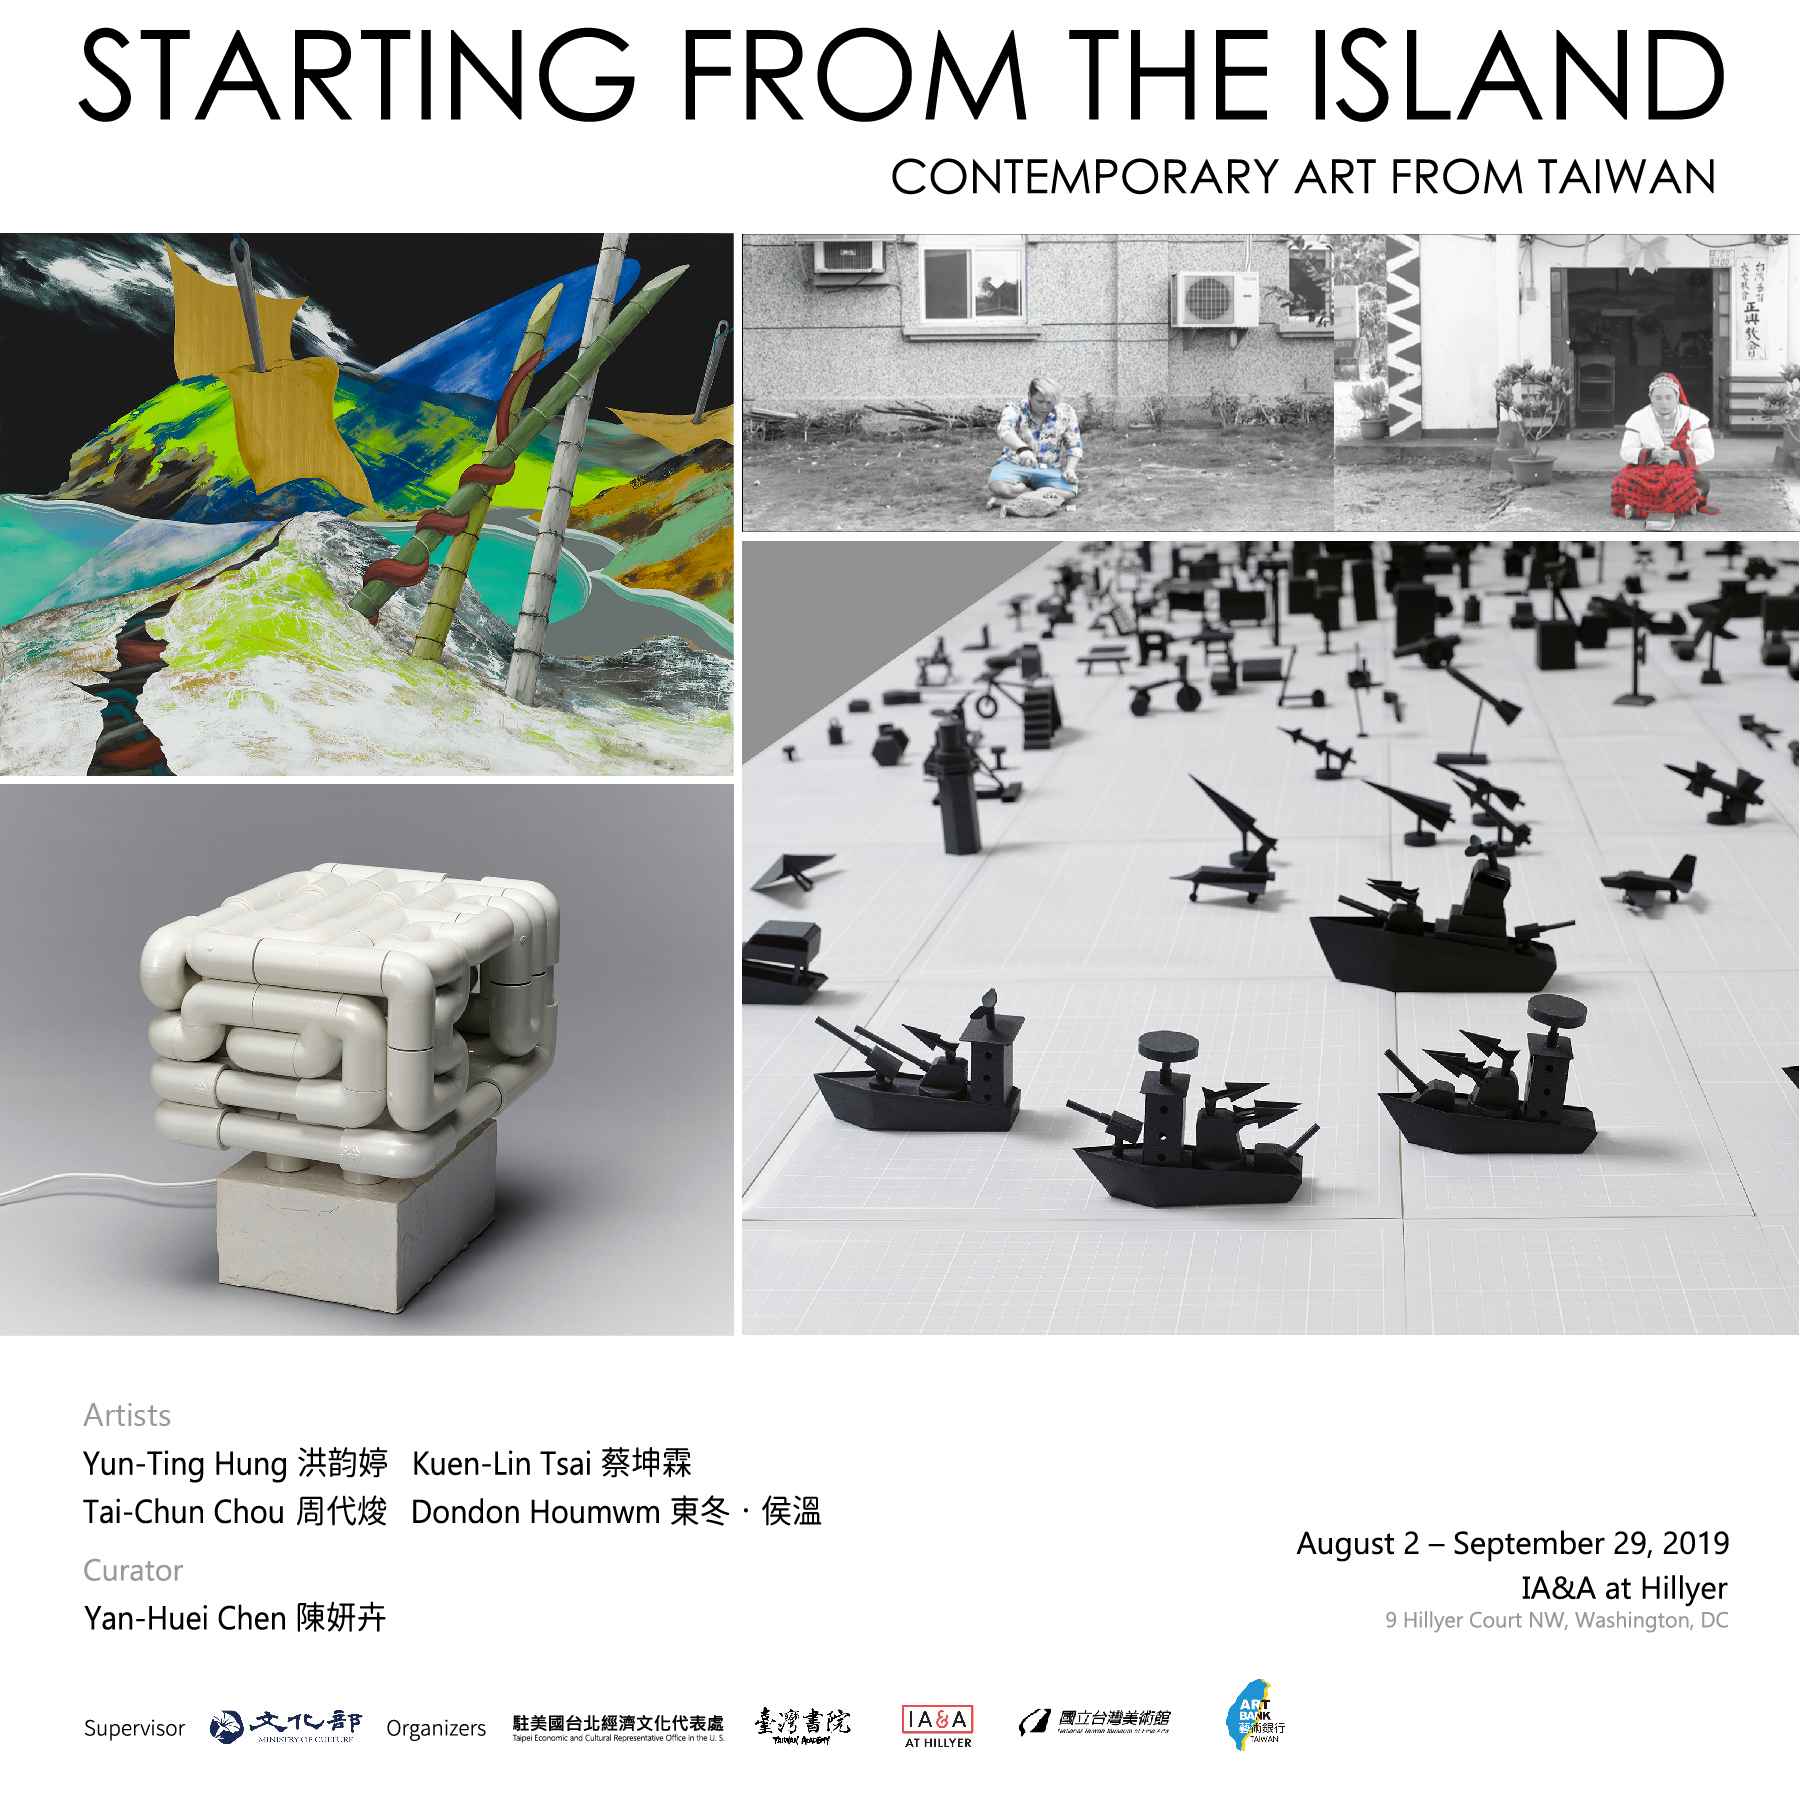 Starting from the Island